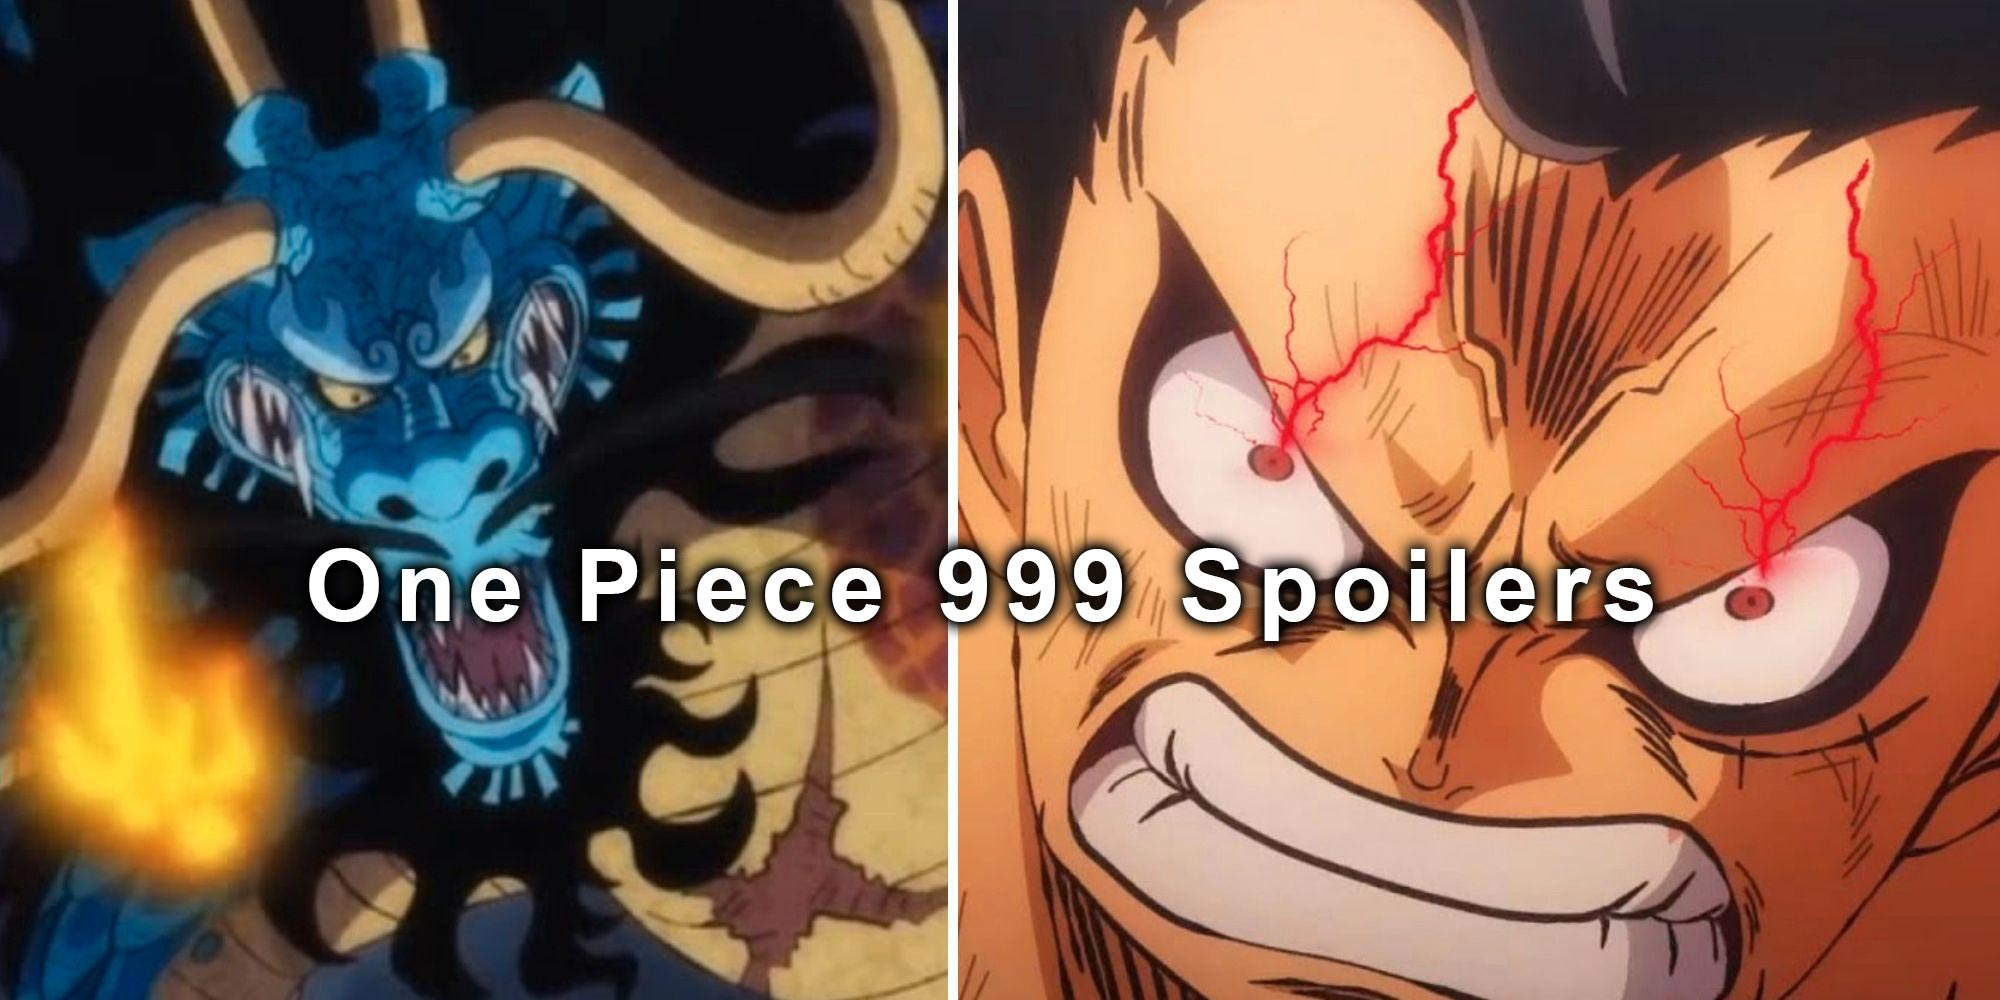 One Piece 999 Spoilers